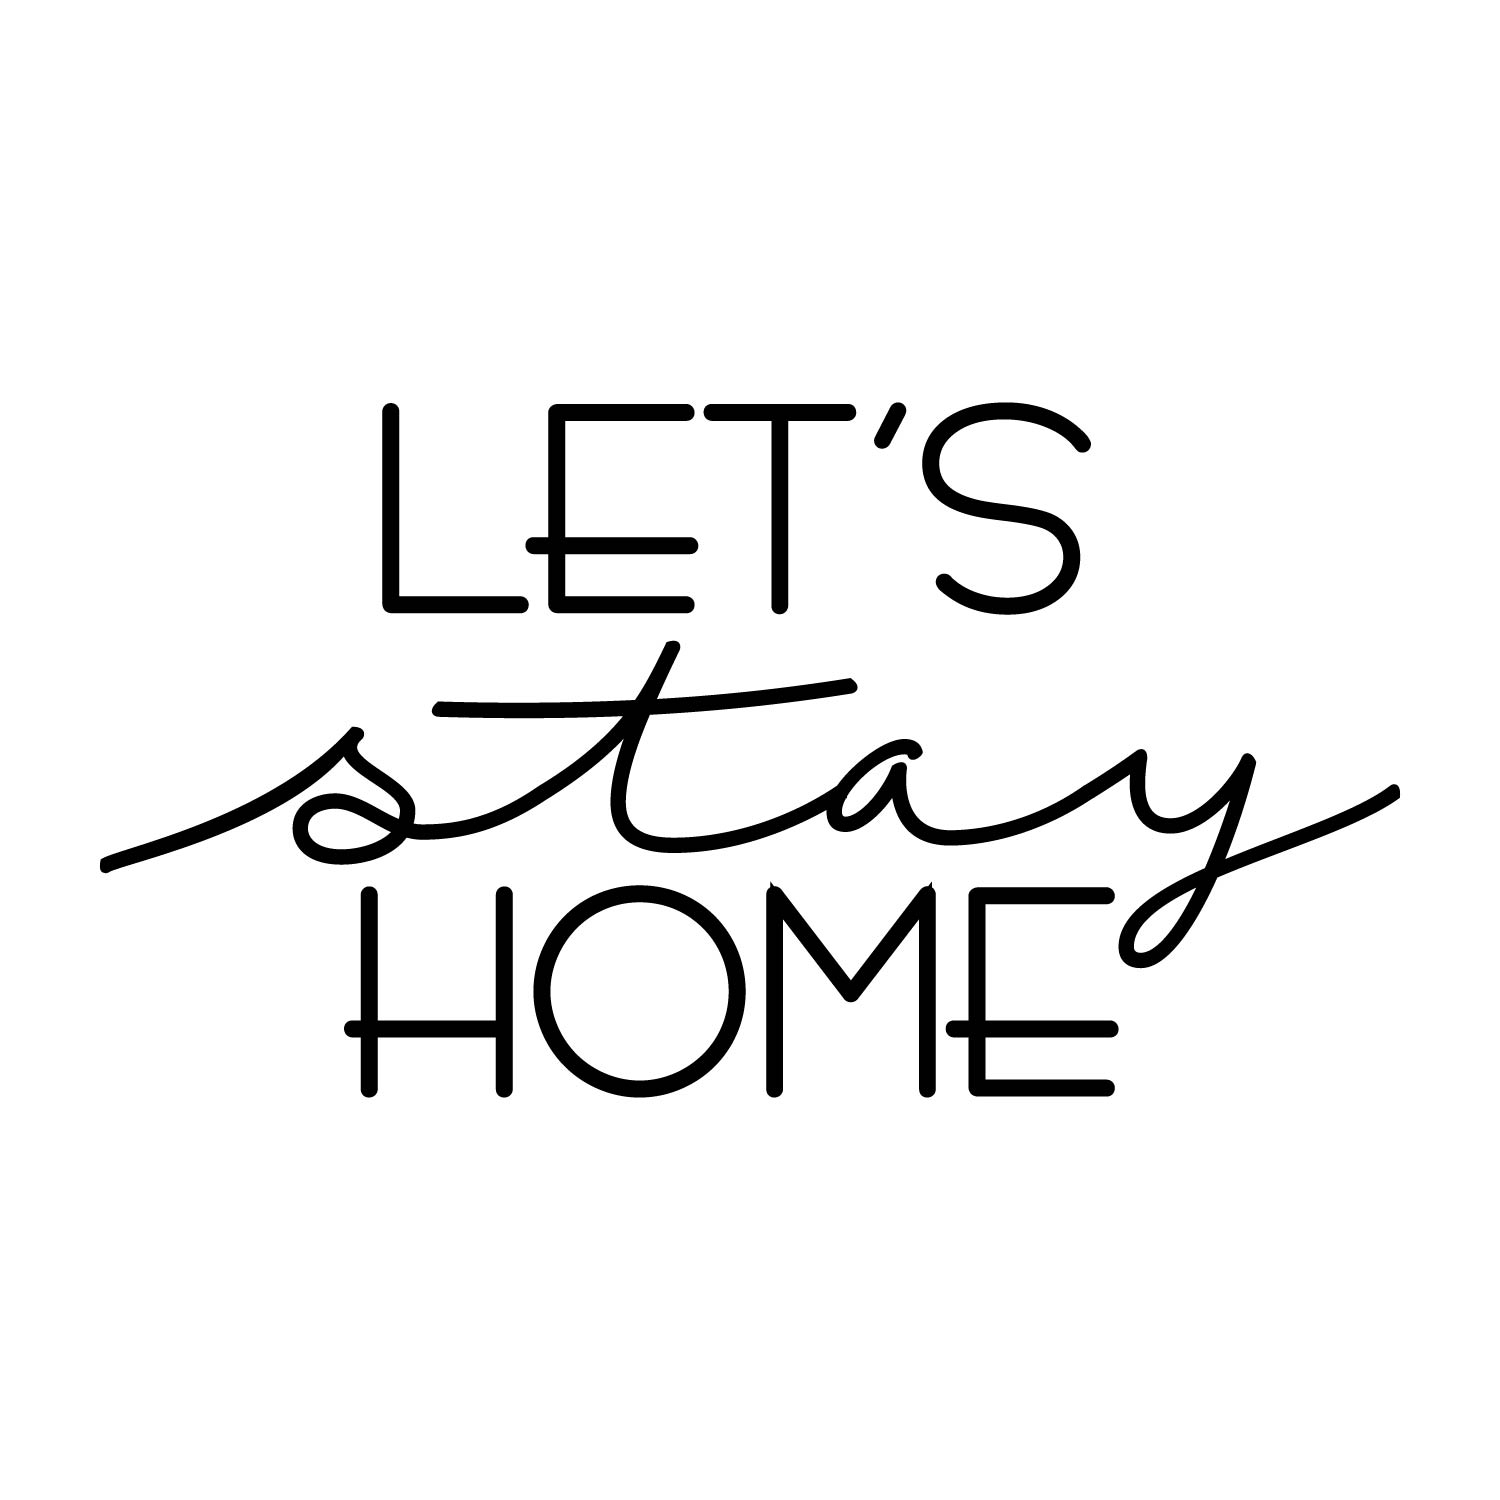 1 - Let's Stay Home